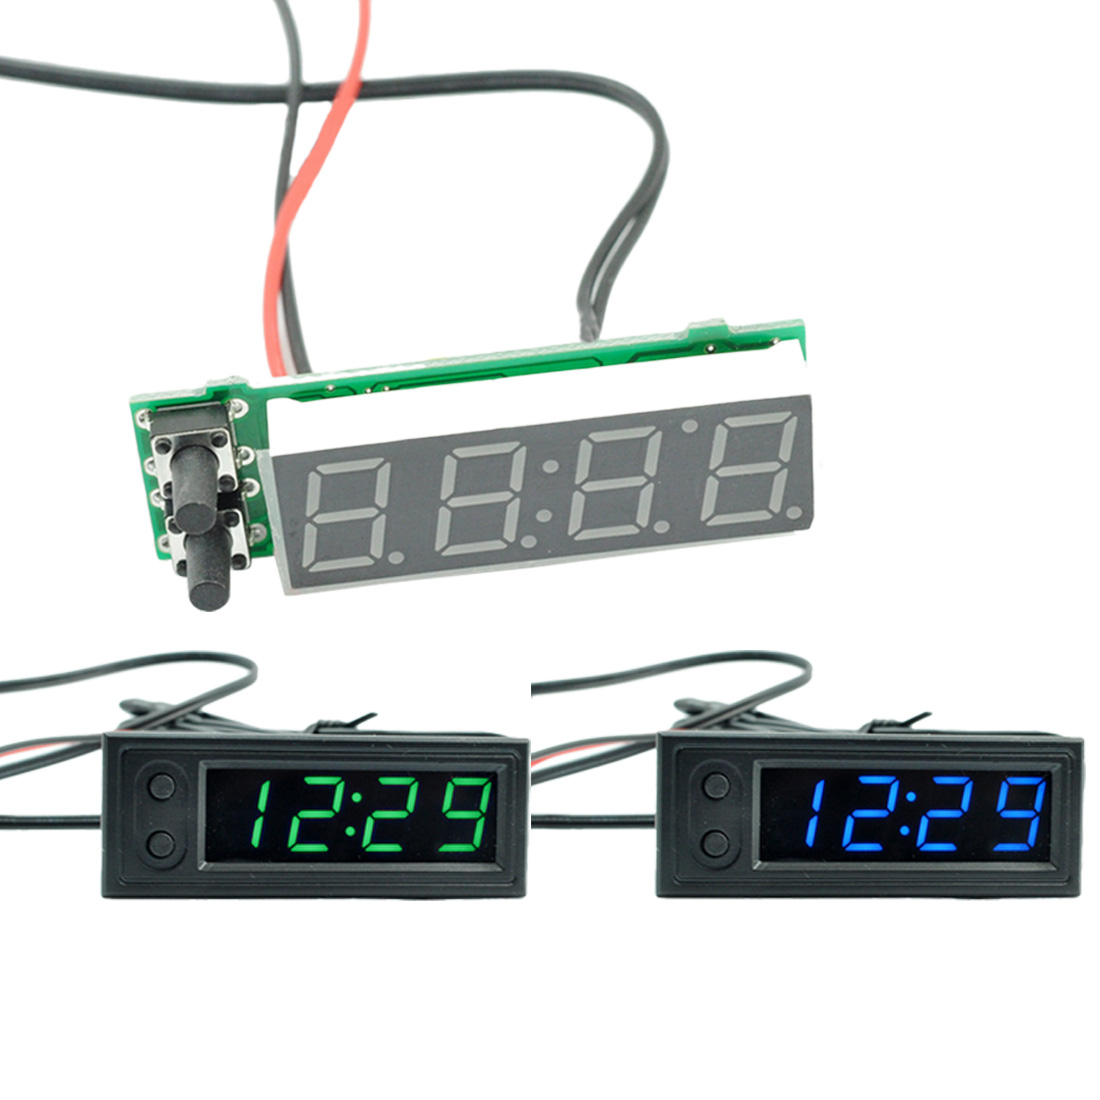 Car Temperature Battery Voltage Monitor Panel Meter DC 12V Clock Inside and Outside High-precision Multifunction Car Temperature Battery Voltage Monitor Panel Meter DC 12V Clock Inside and Outside High-precision Multifunction